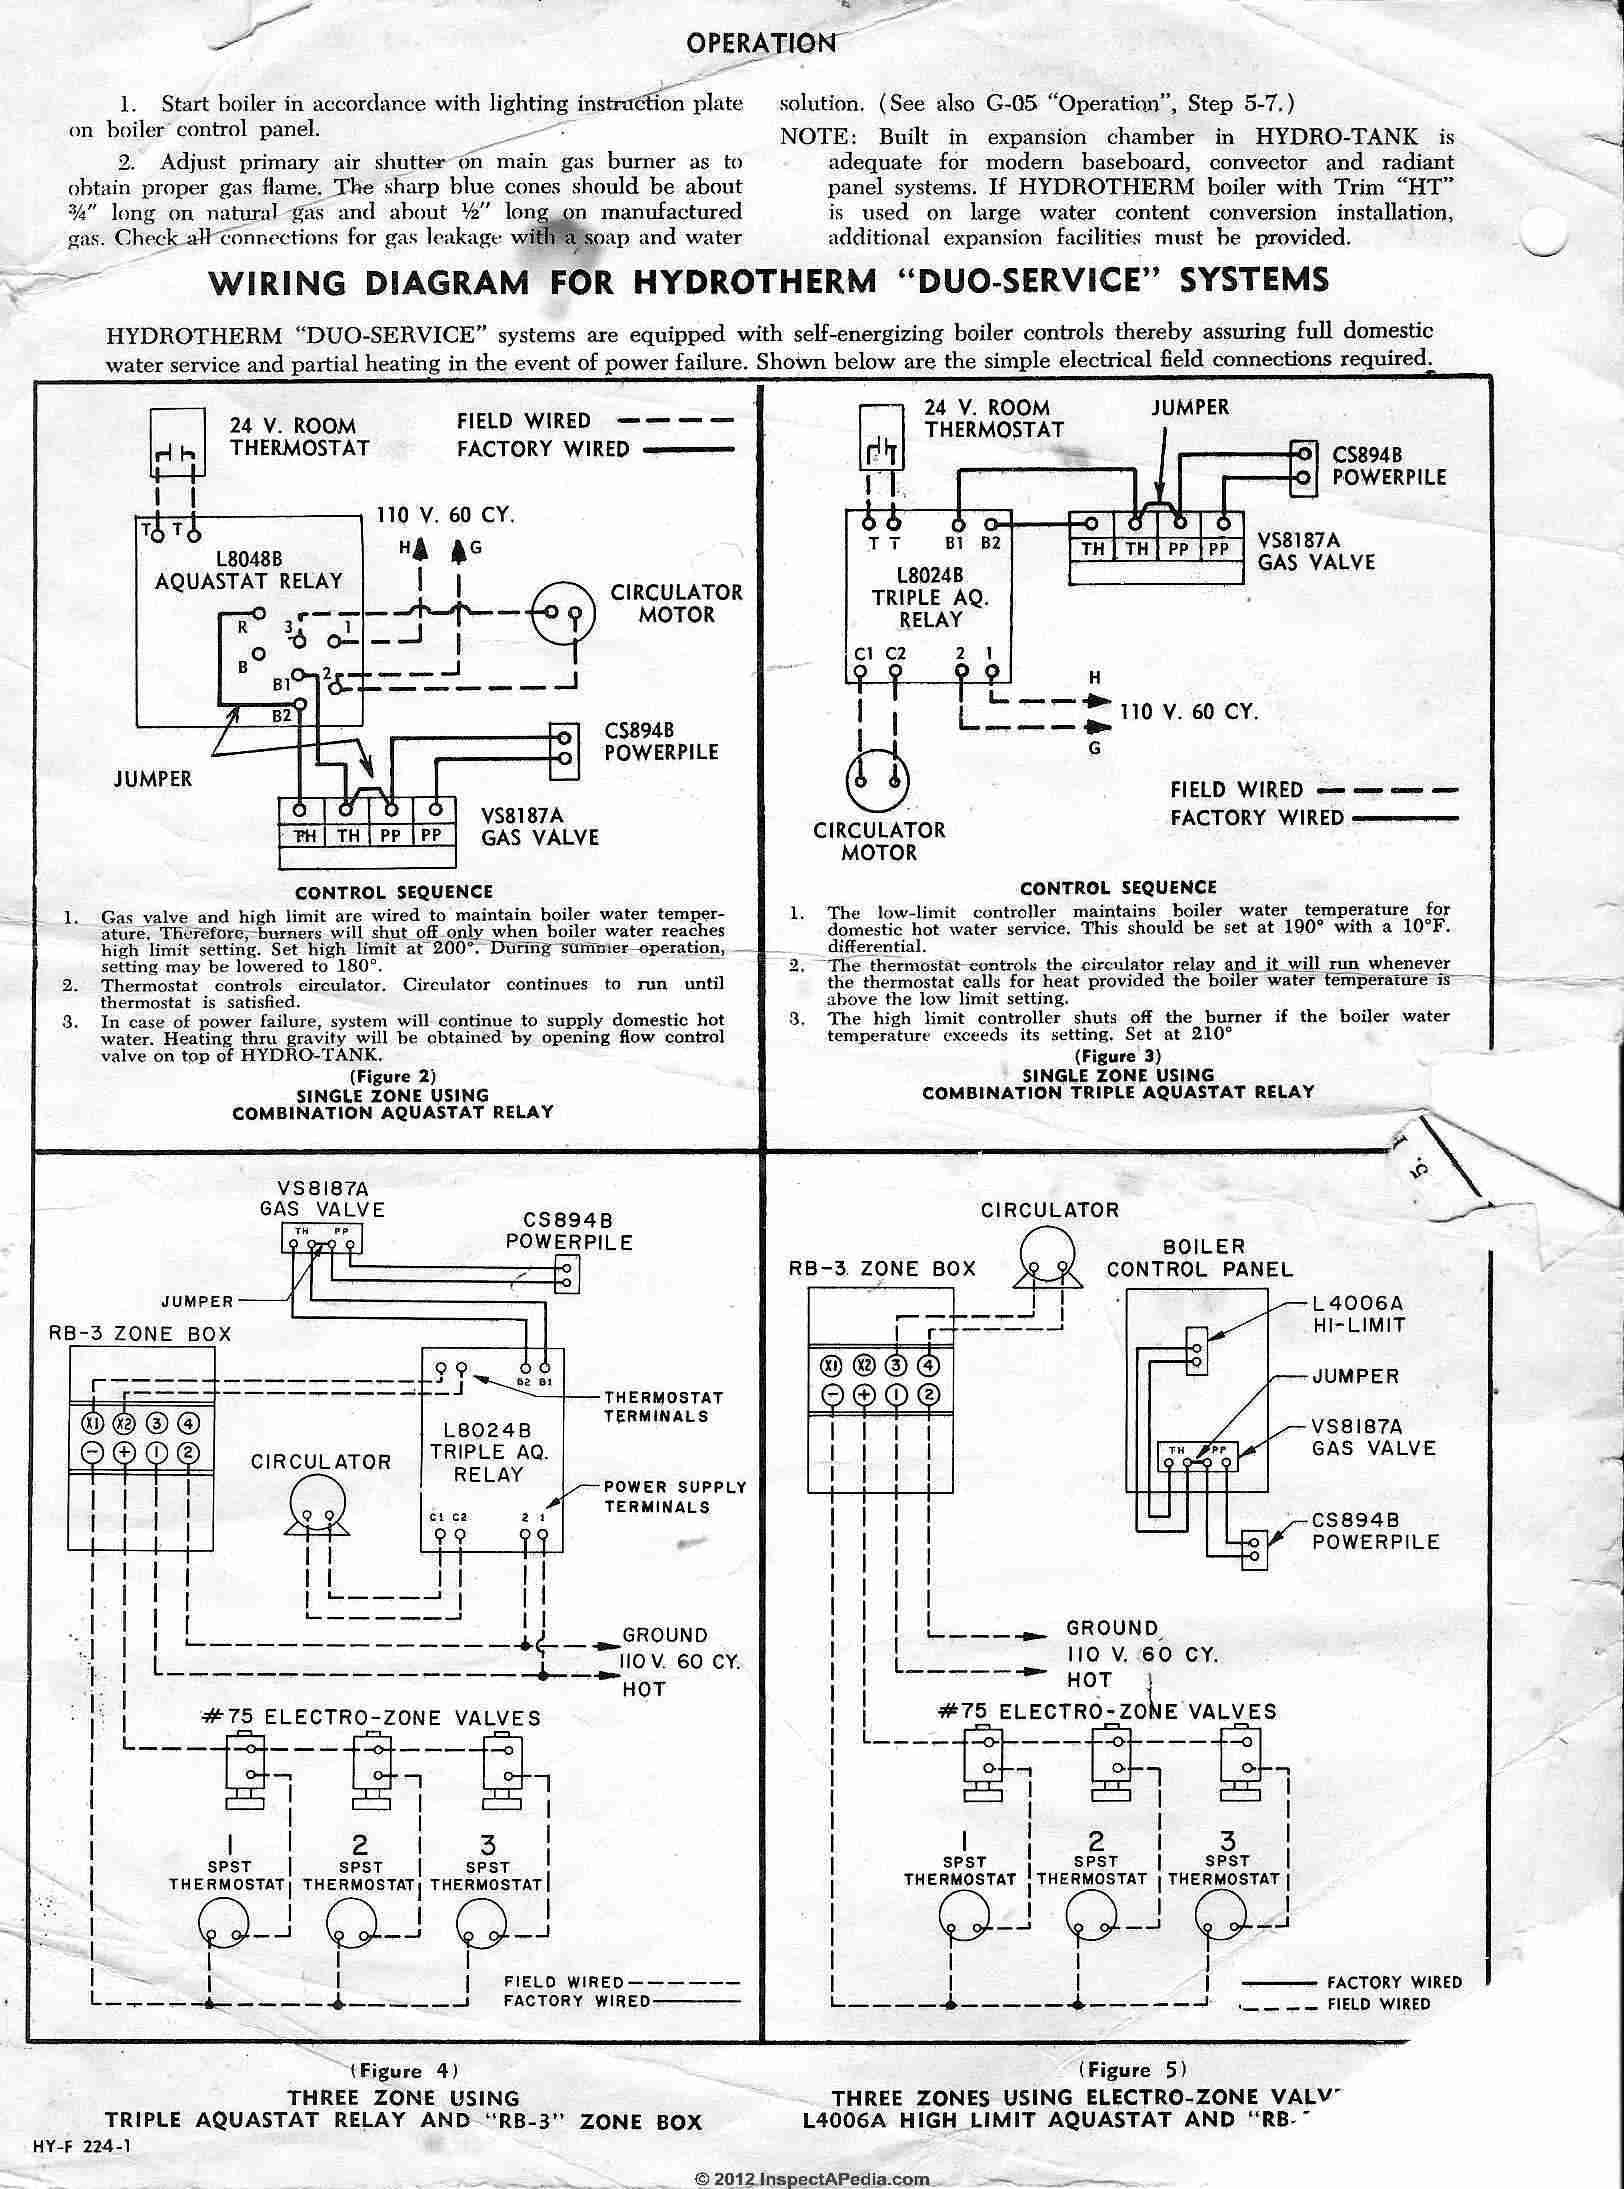 L8024B_Aquastat_0422_DJFcs heating boiler aquastat control diagnosis, troubleshooting, repair honeywell l8124a wiring diagram at readyjetset.co